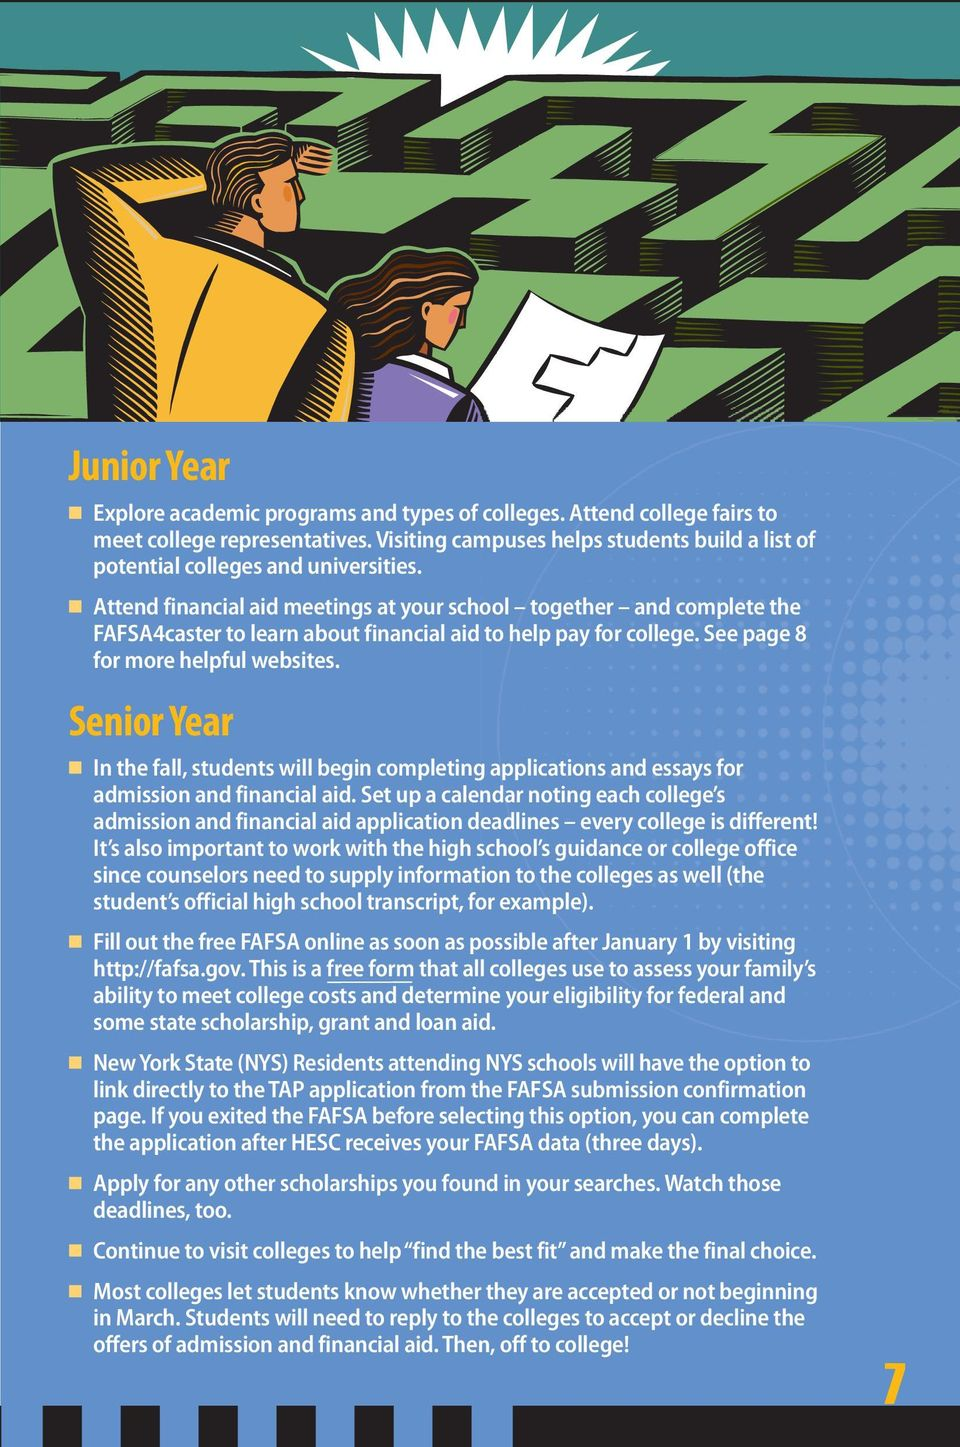 Senior Year In the fall, students will begin completing applications and essays for admission and financial aid.